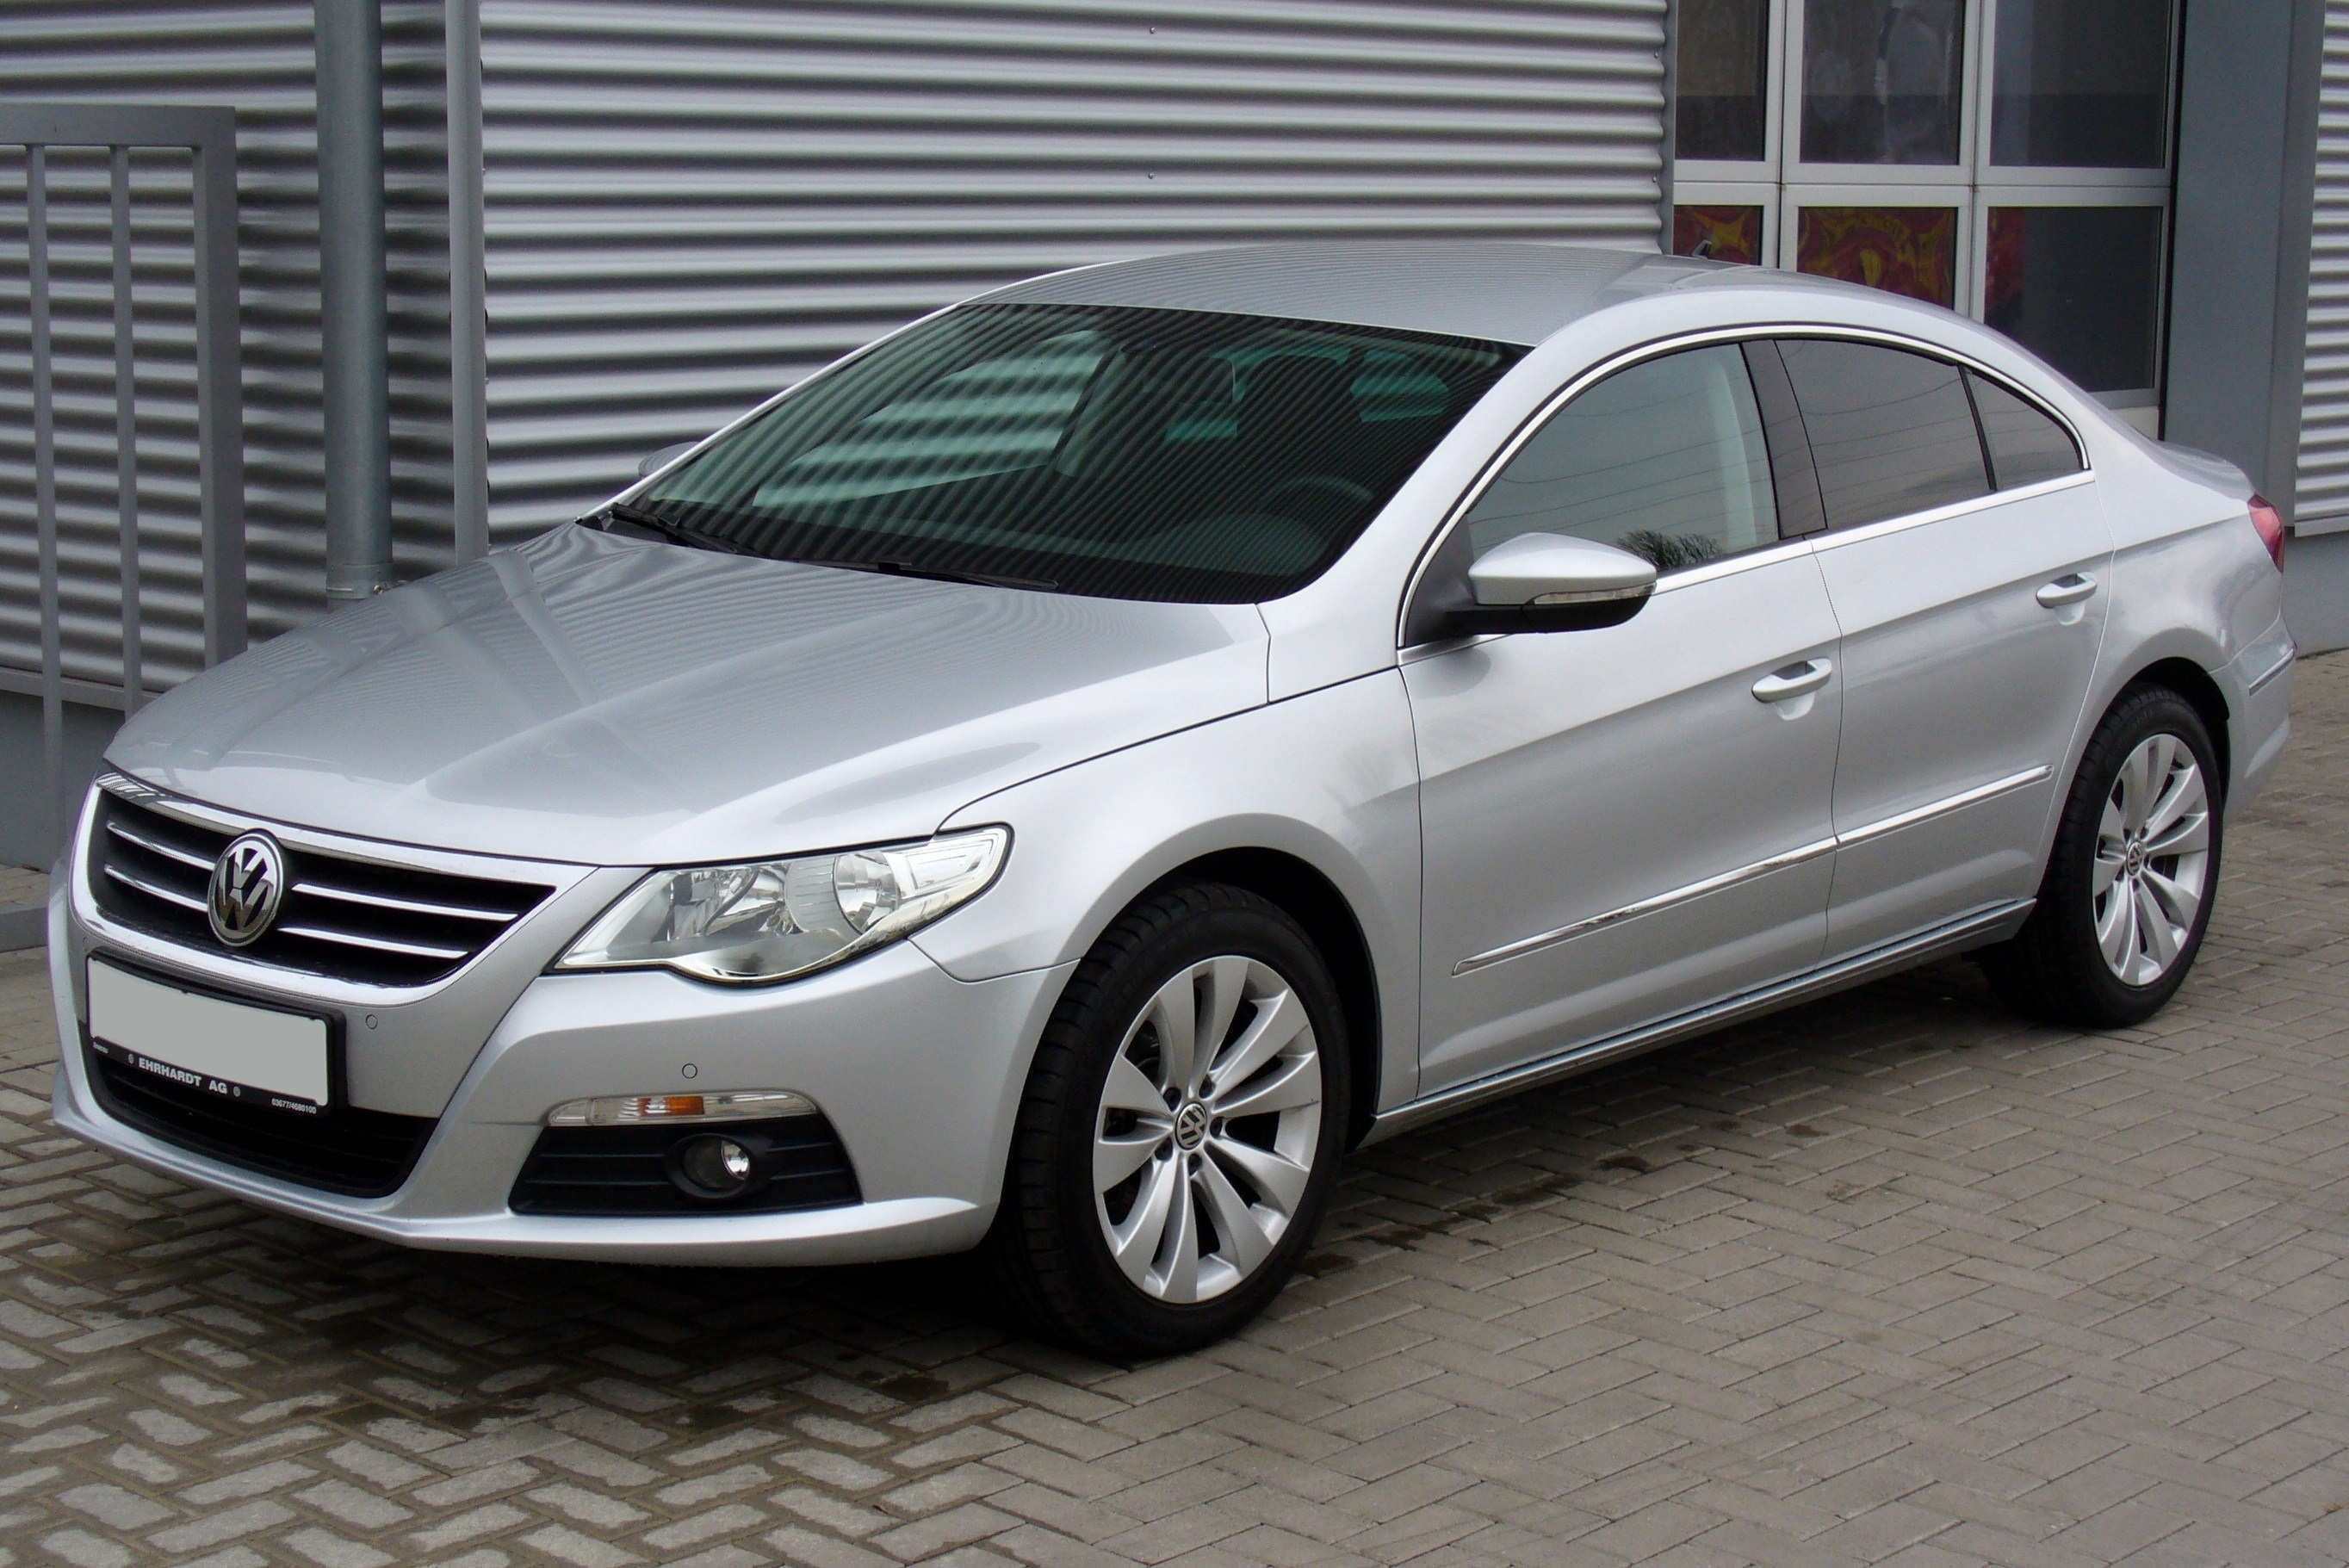 20 Concept of Vw Cc Redesign History for Vw Cc Redesign